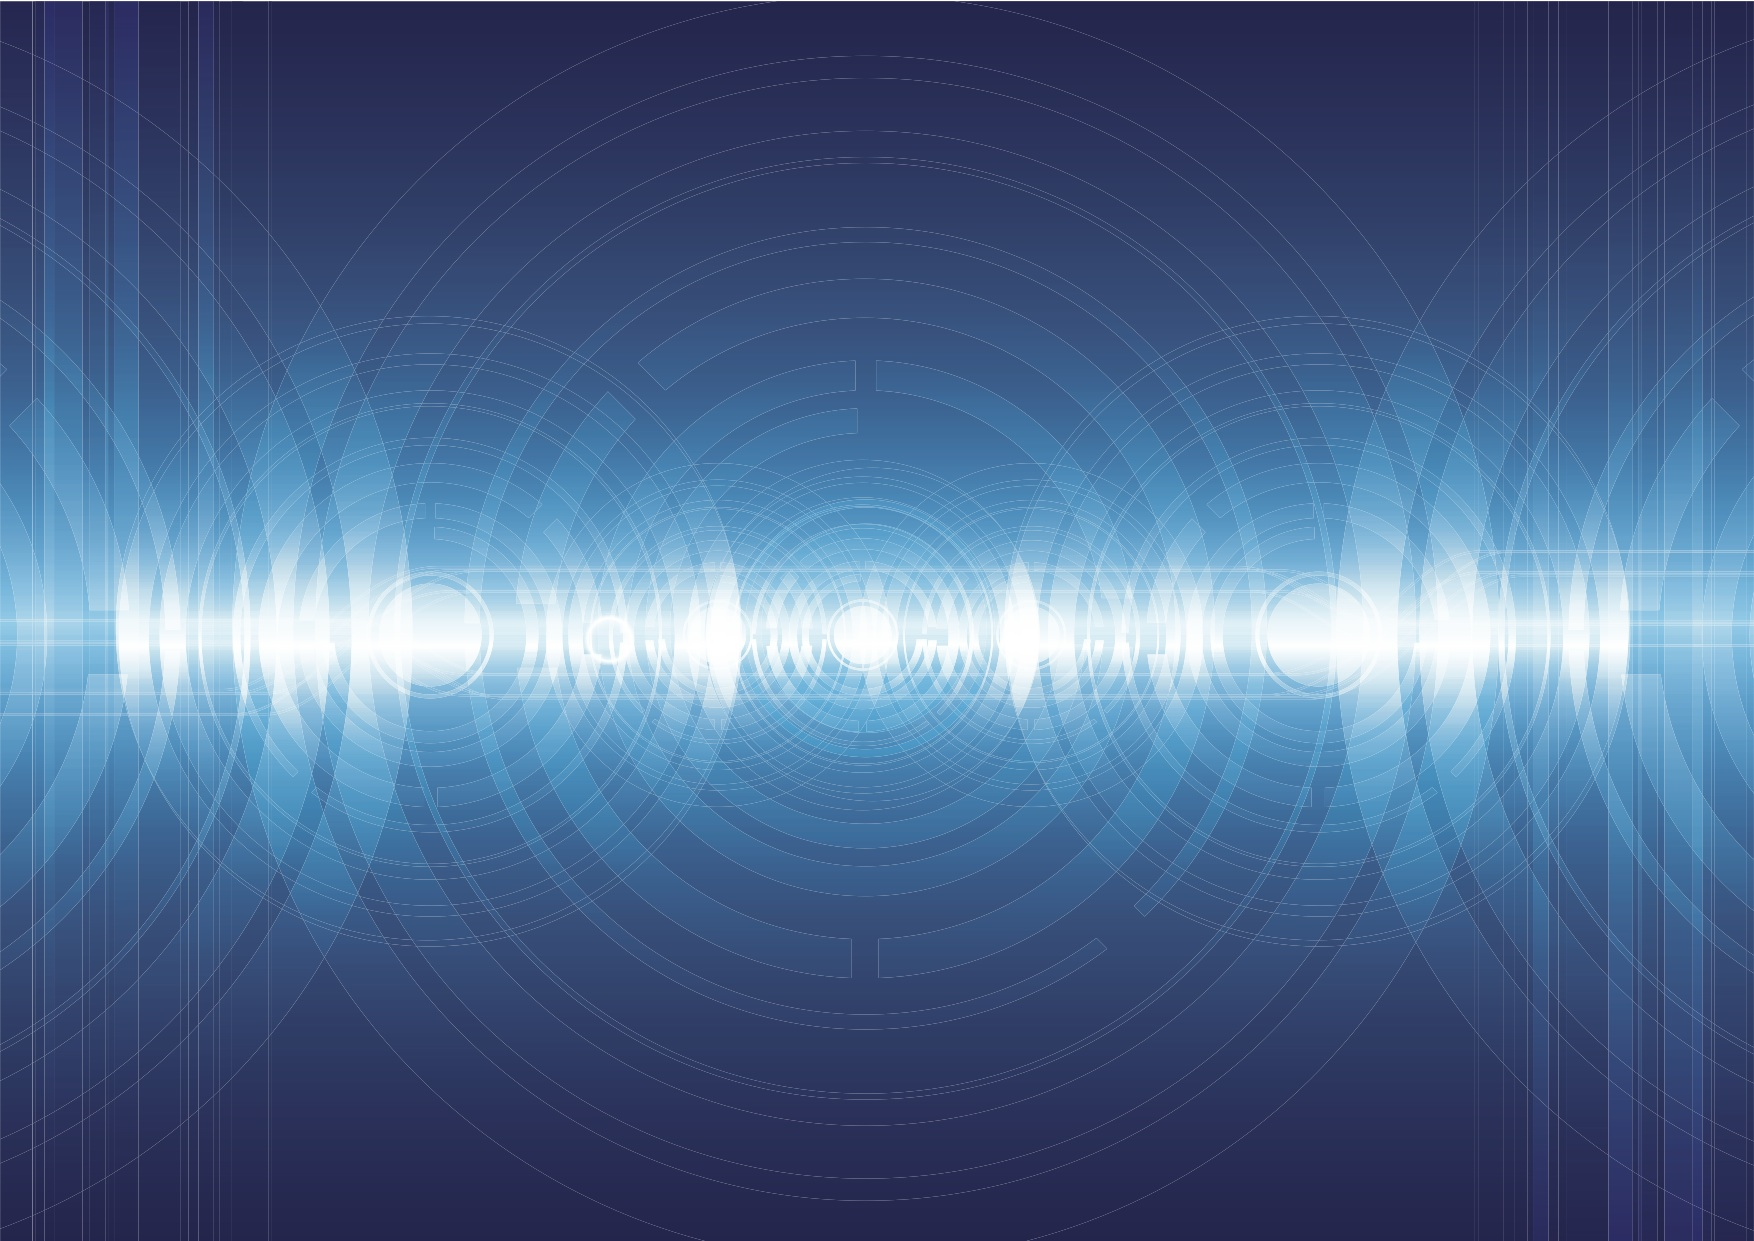 radio-waves-airwaves-spectrum